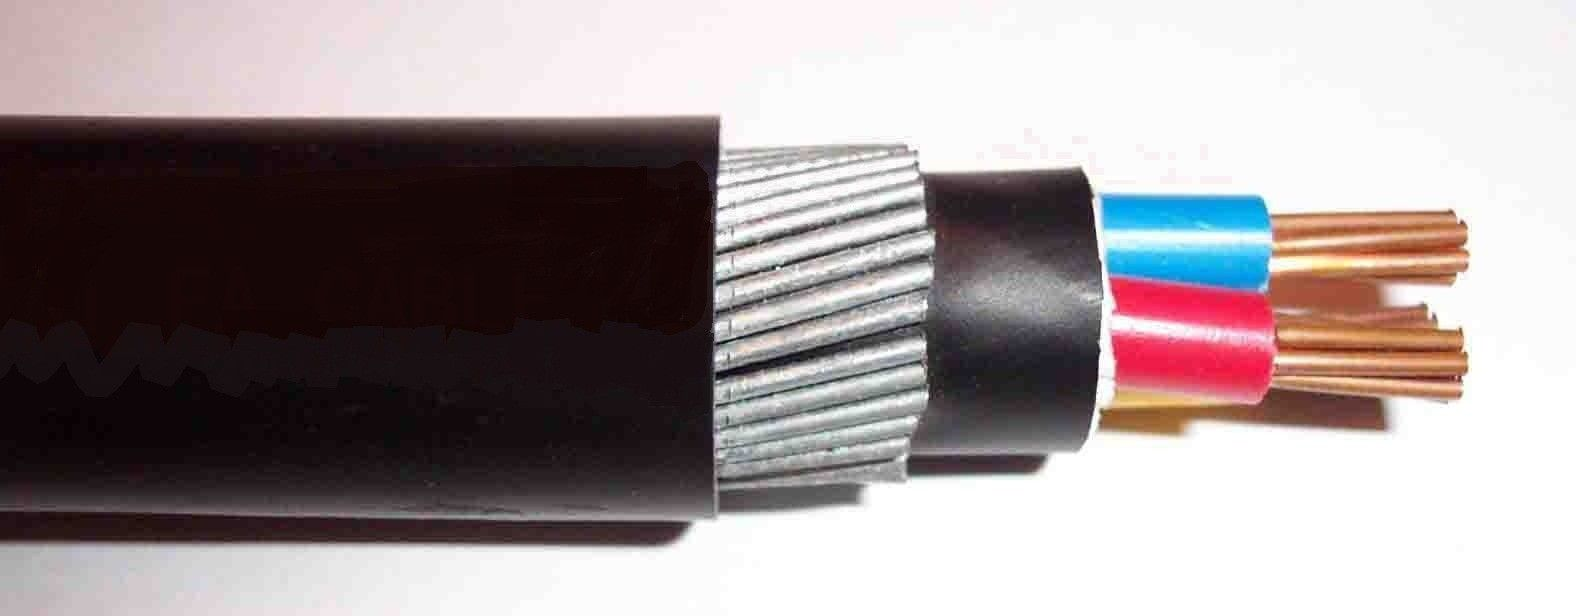 Lt Armoured Cable Cables Copper Sheathing